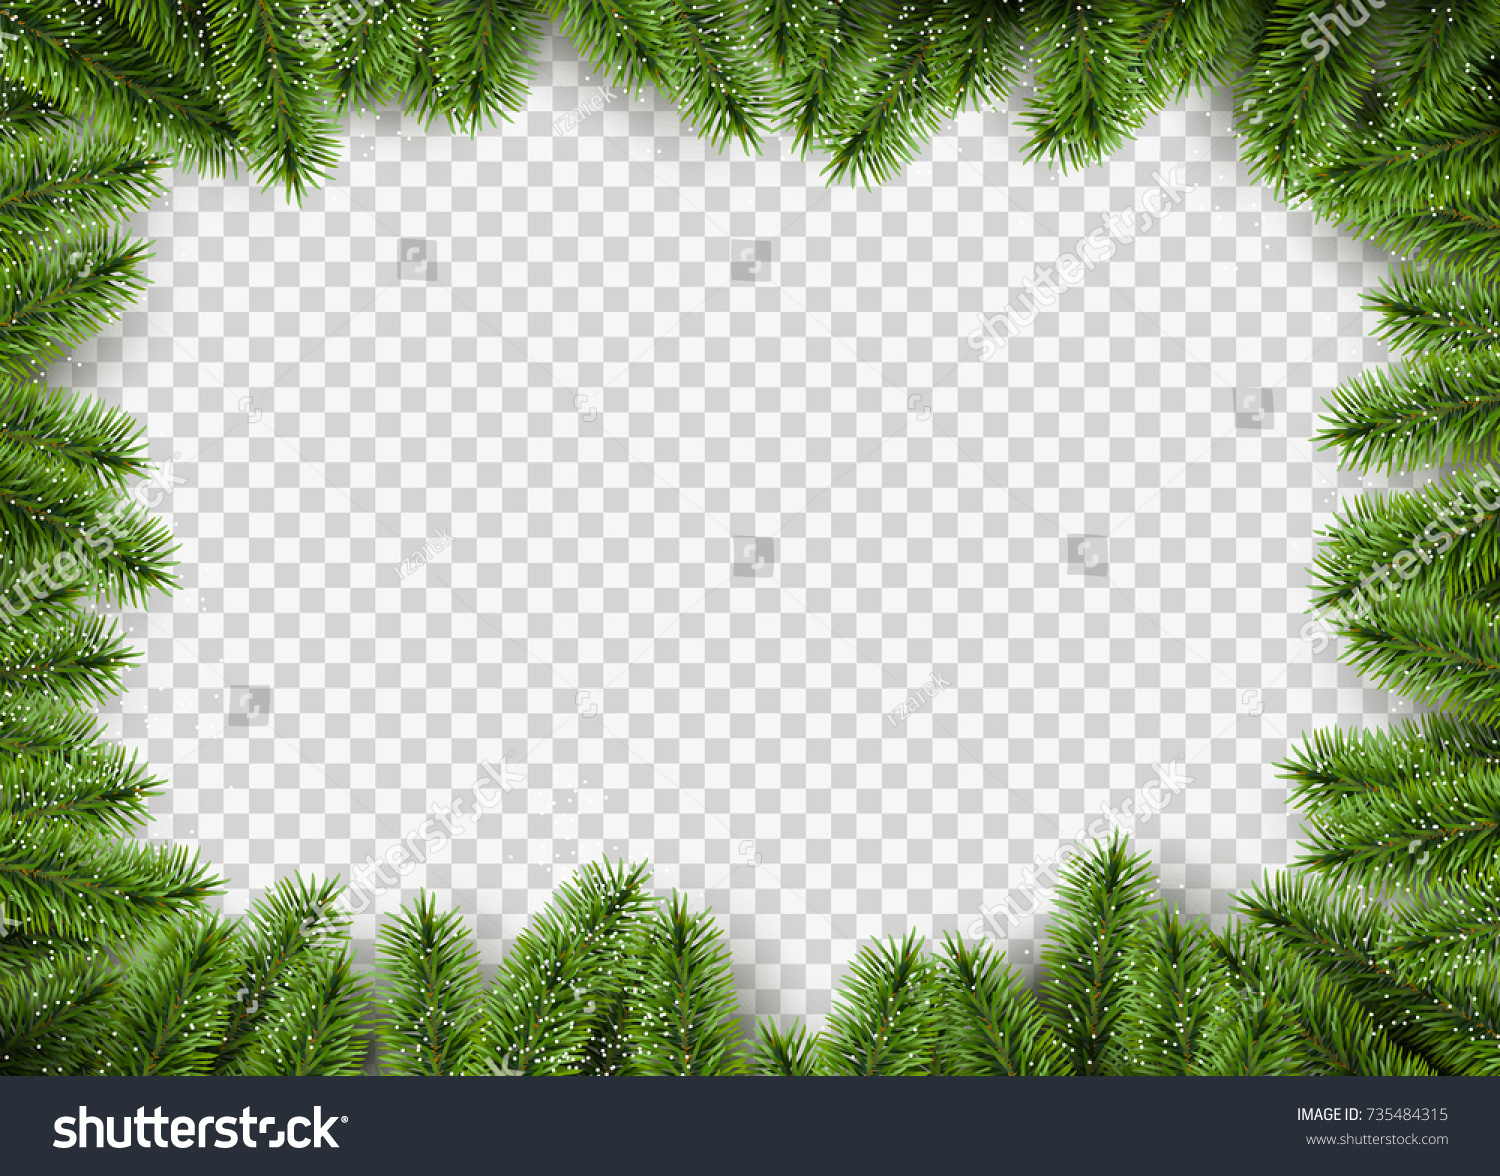 Vector Christmas Frame Pine Branches Transparent Stock